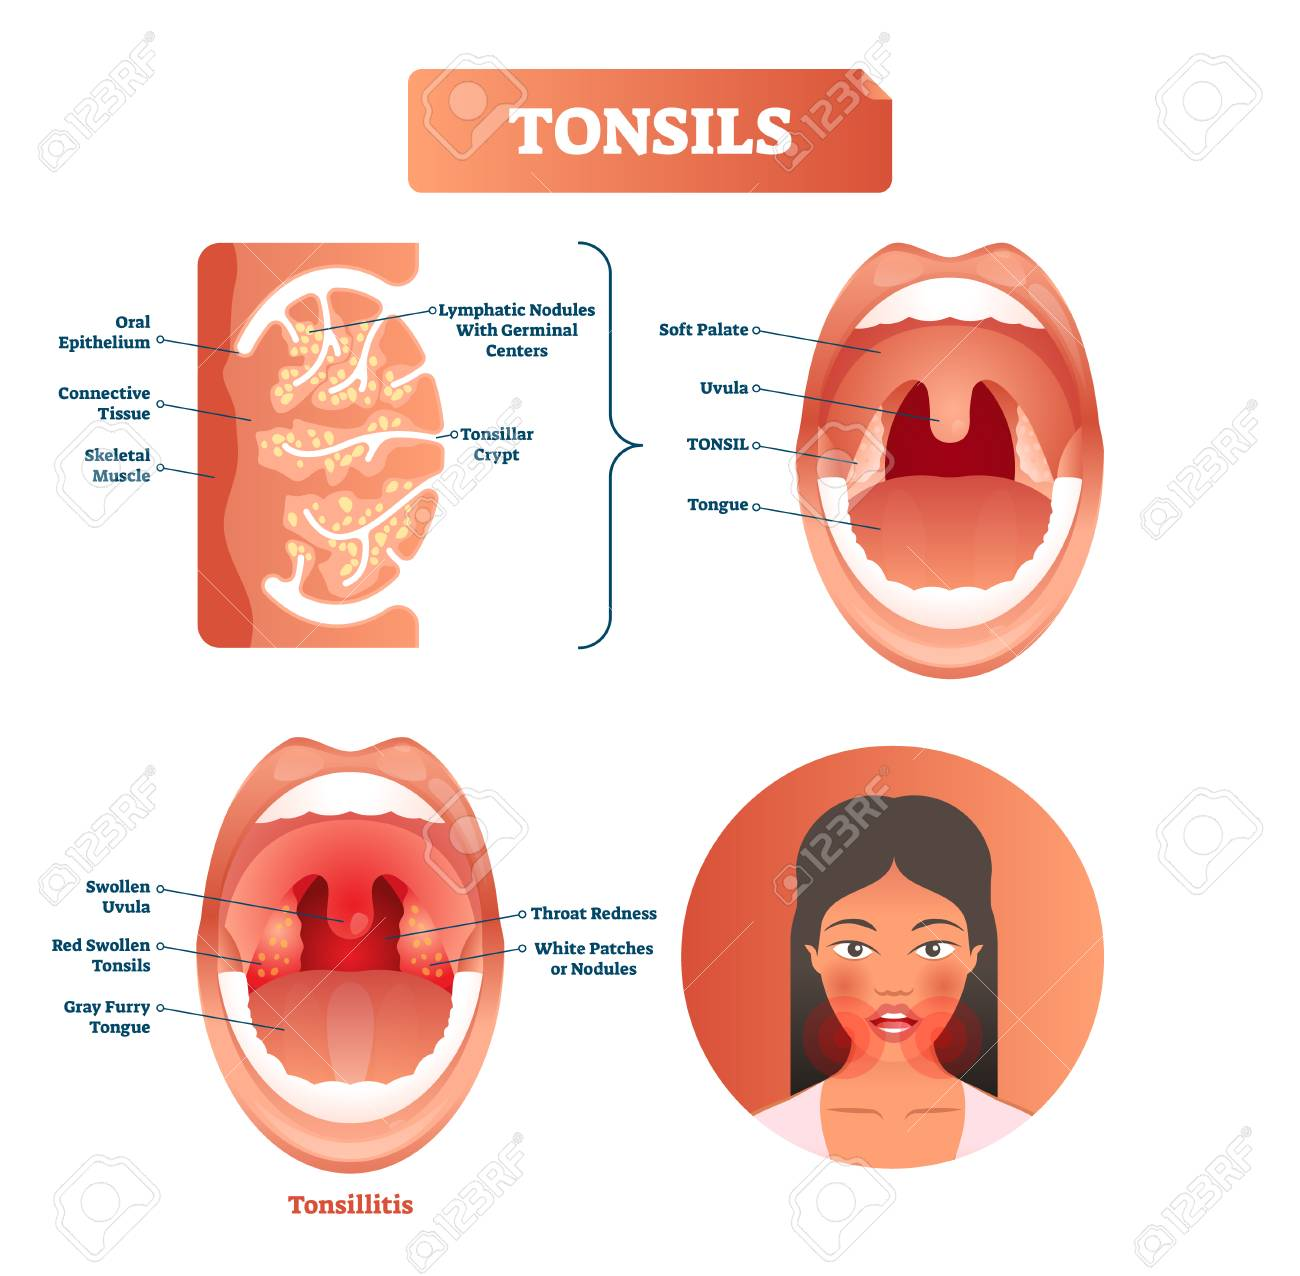 tonsillitis labeled structure diagram with swollen uvula, gray furry tongue,